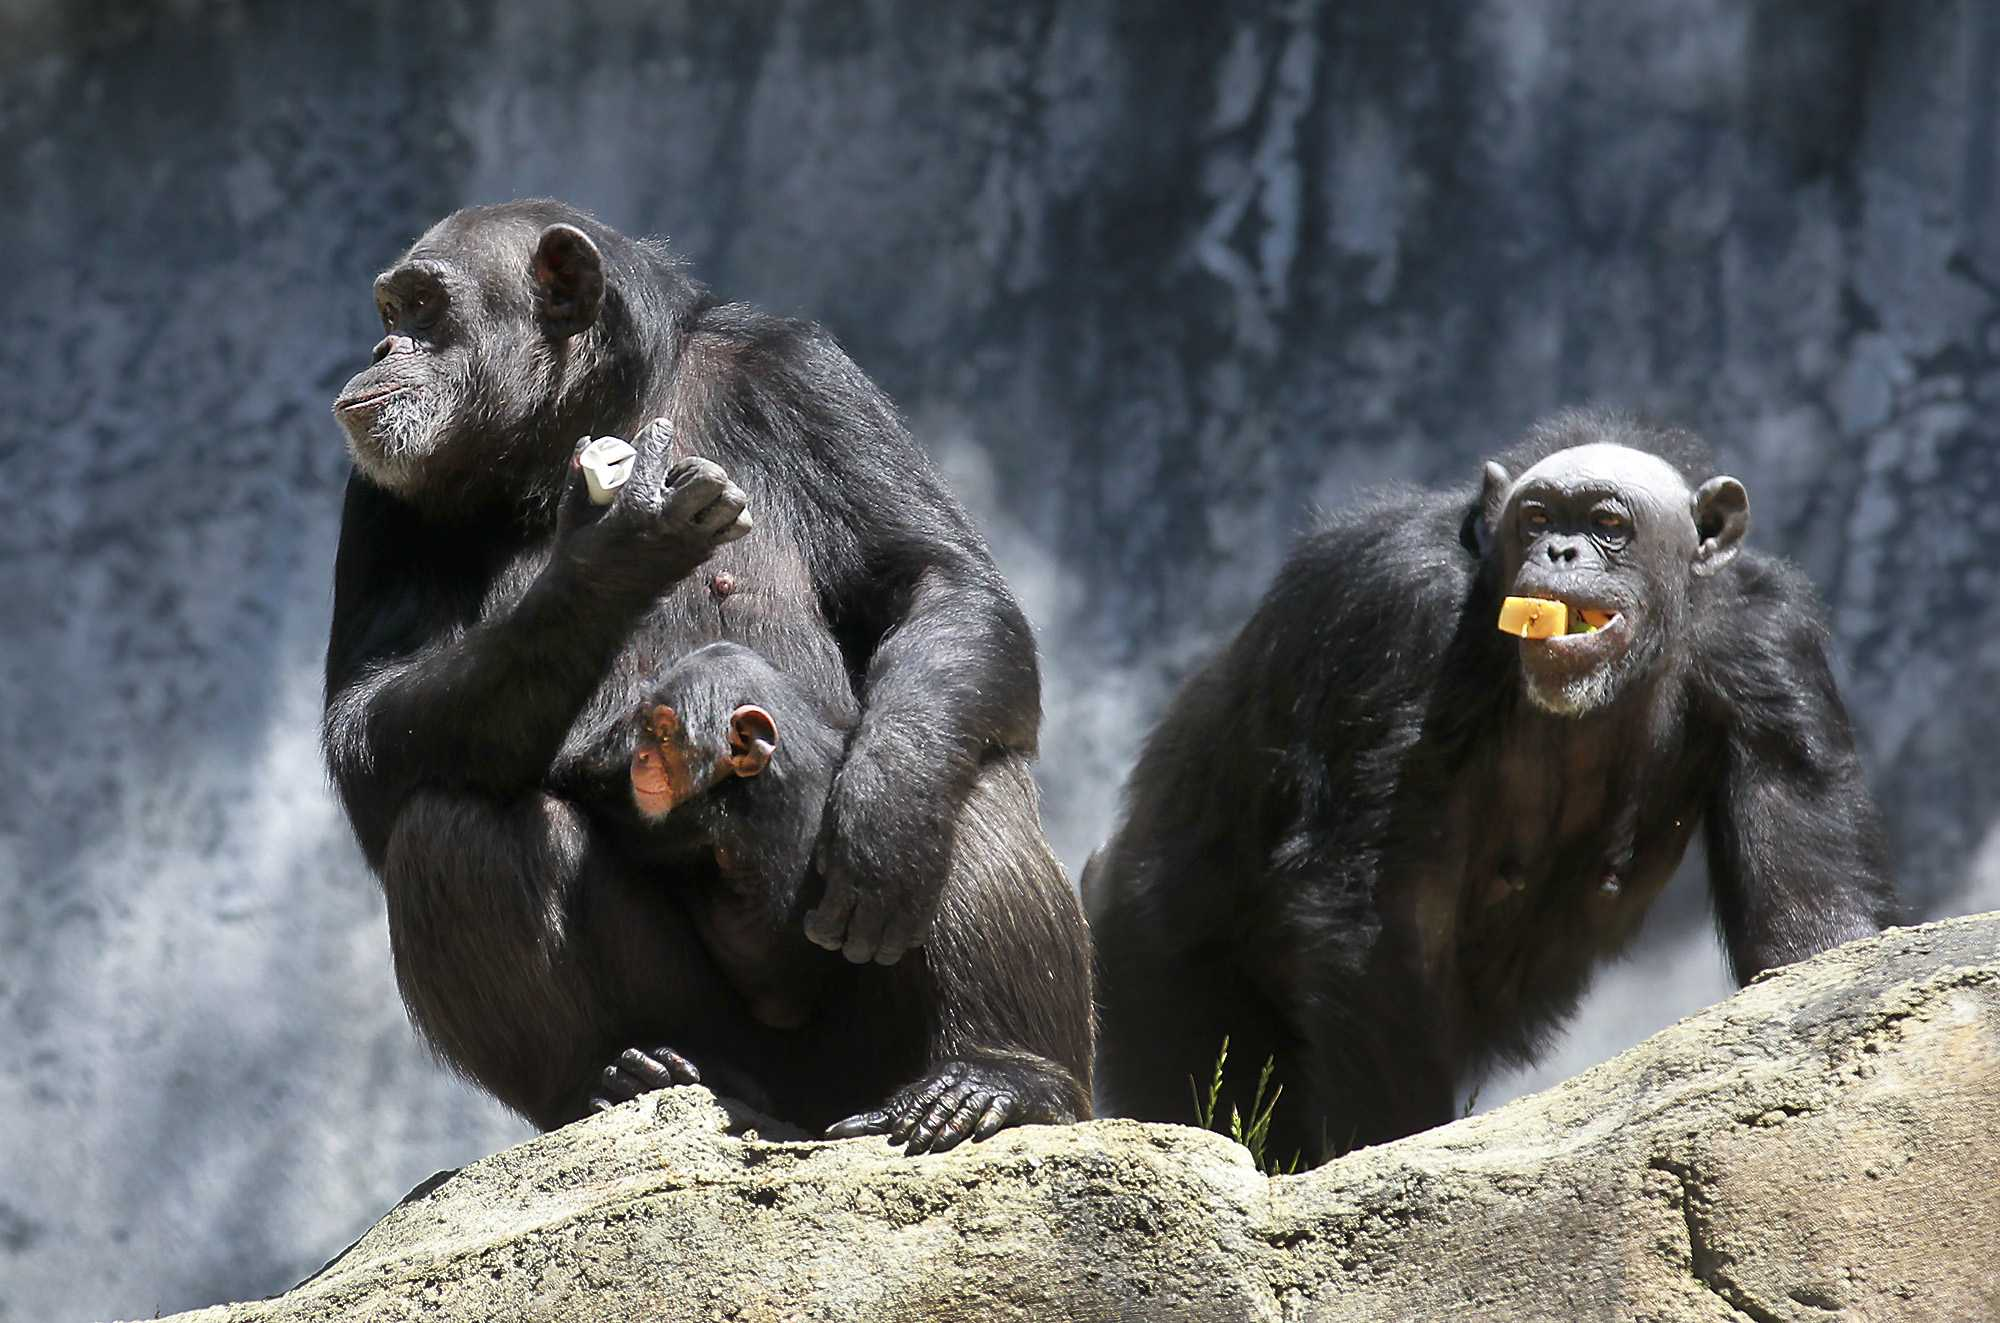 Photo shows 3 chimpanzees